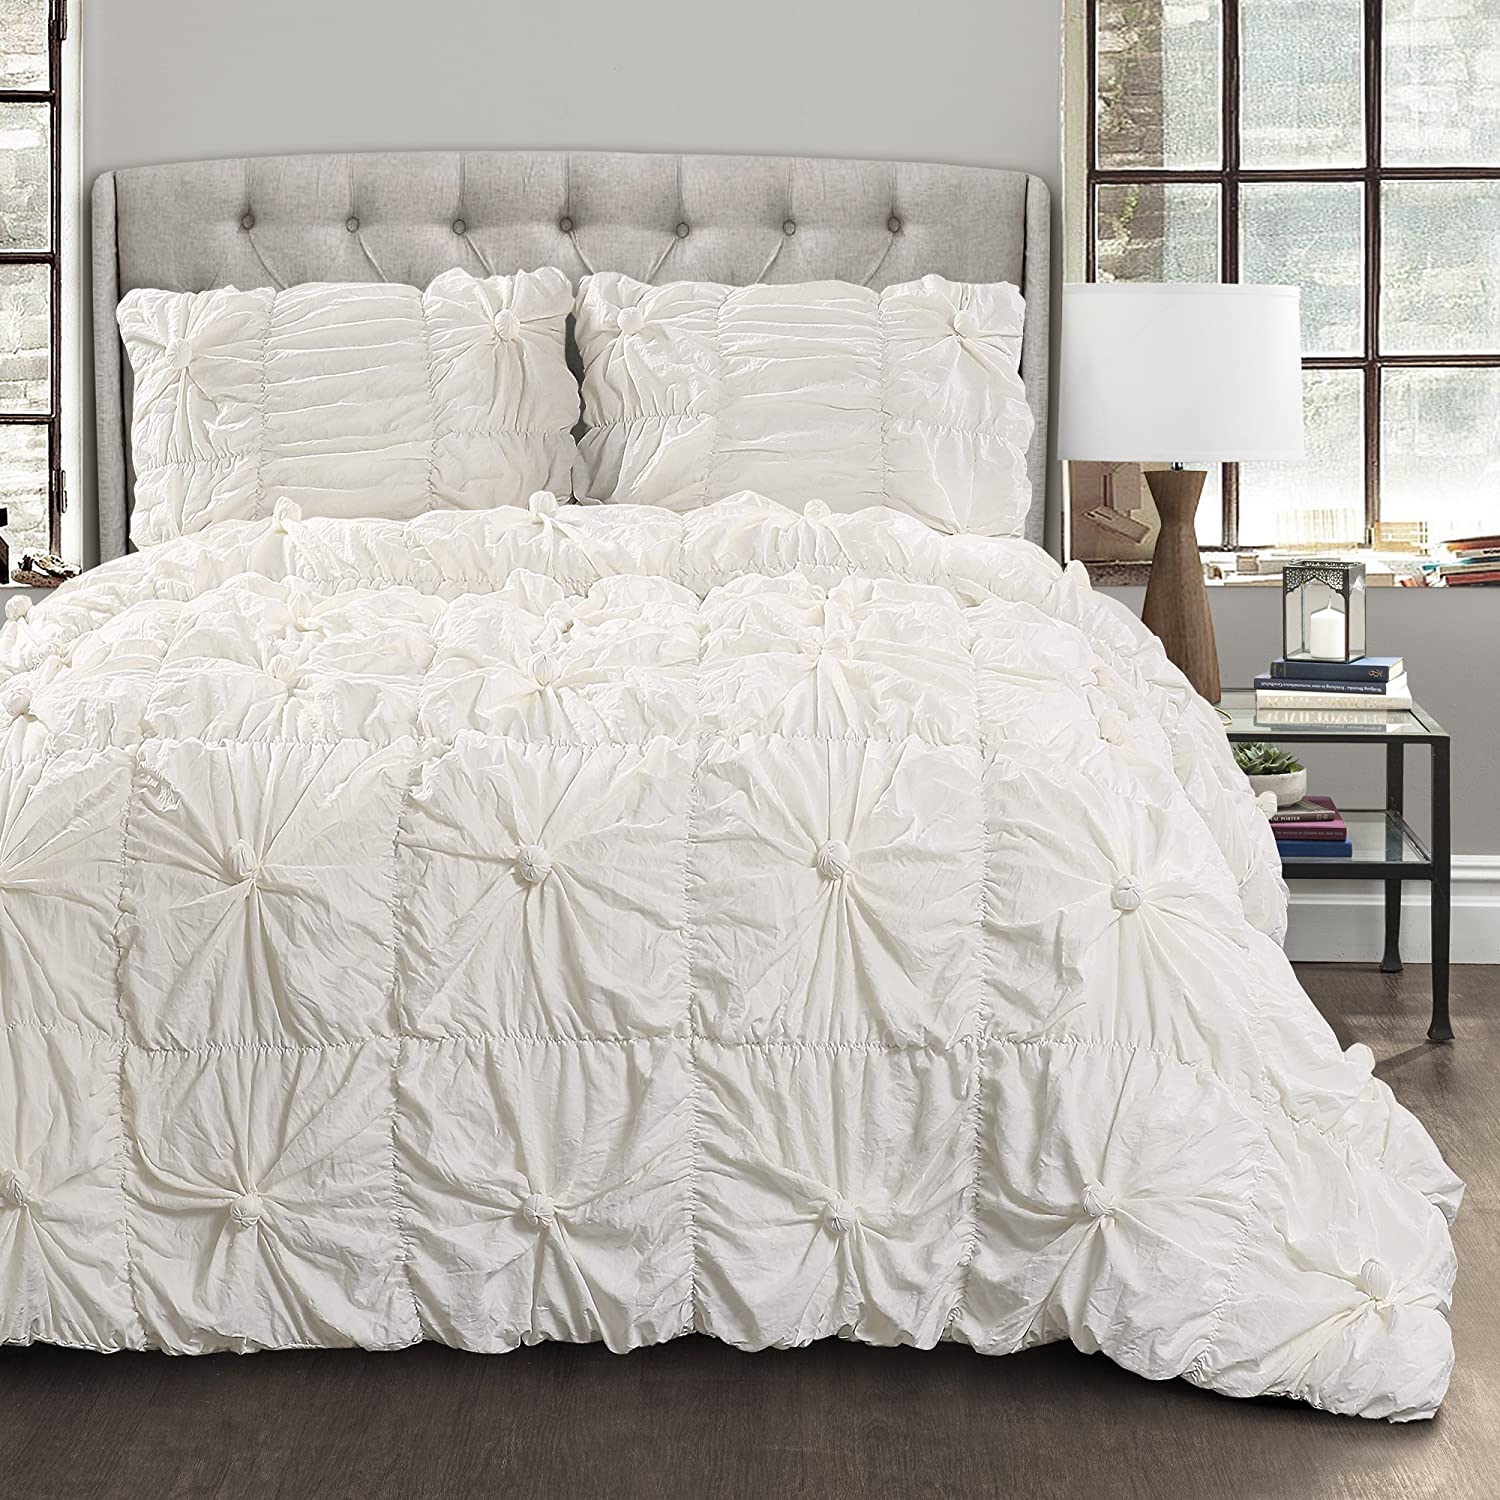 Lush Decor Bella Comforter Set Shabby Chic Style Ruched 3 Piece Bedding with Pillow Shams-King-White